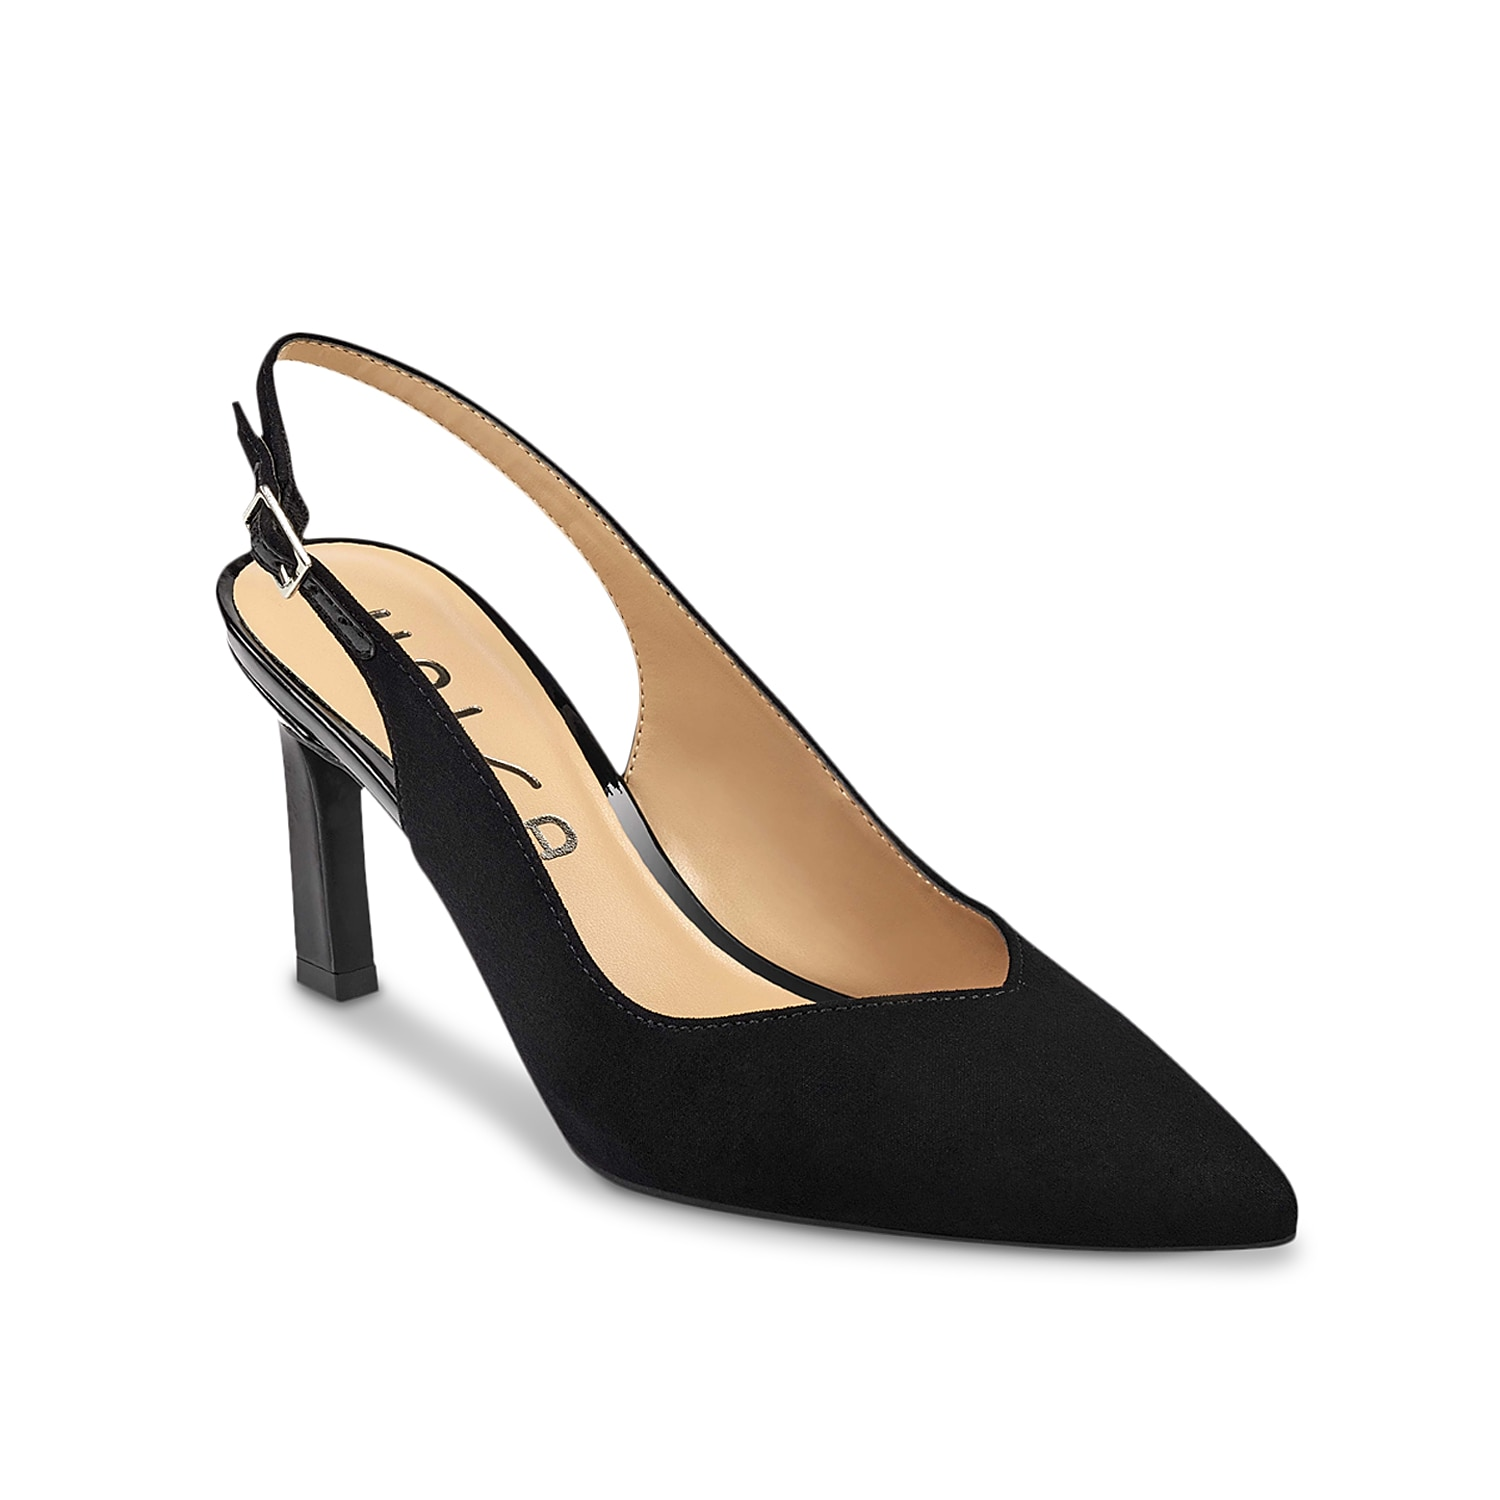 Dress up your ensemble with the Rylo pump from Unisa. This iconic pair is fashioned with an open vamp, slingback strap, and a slender heel.